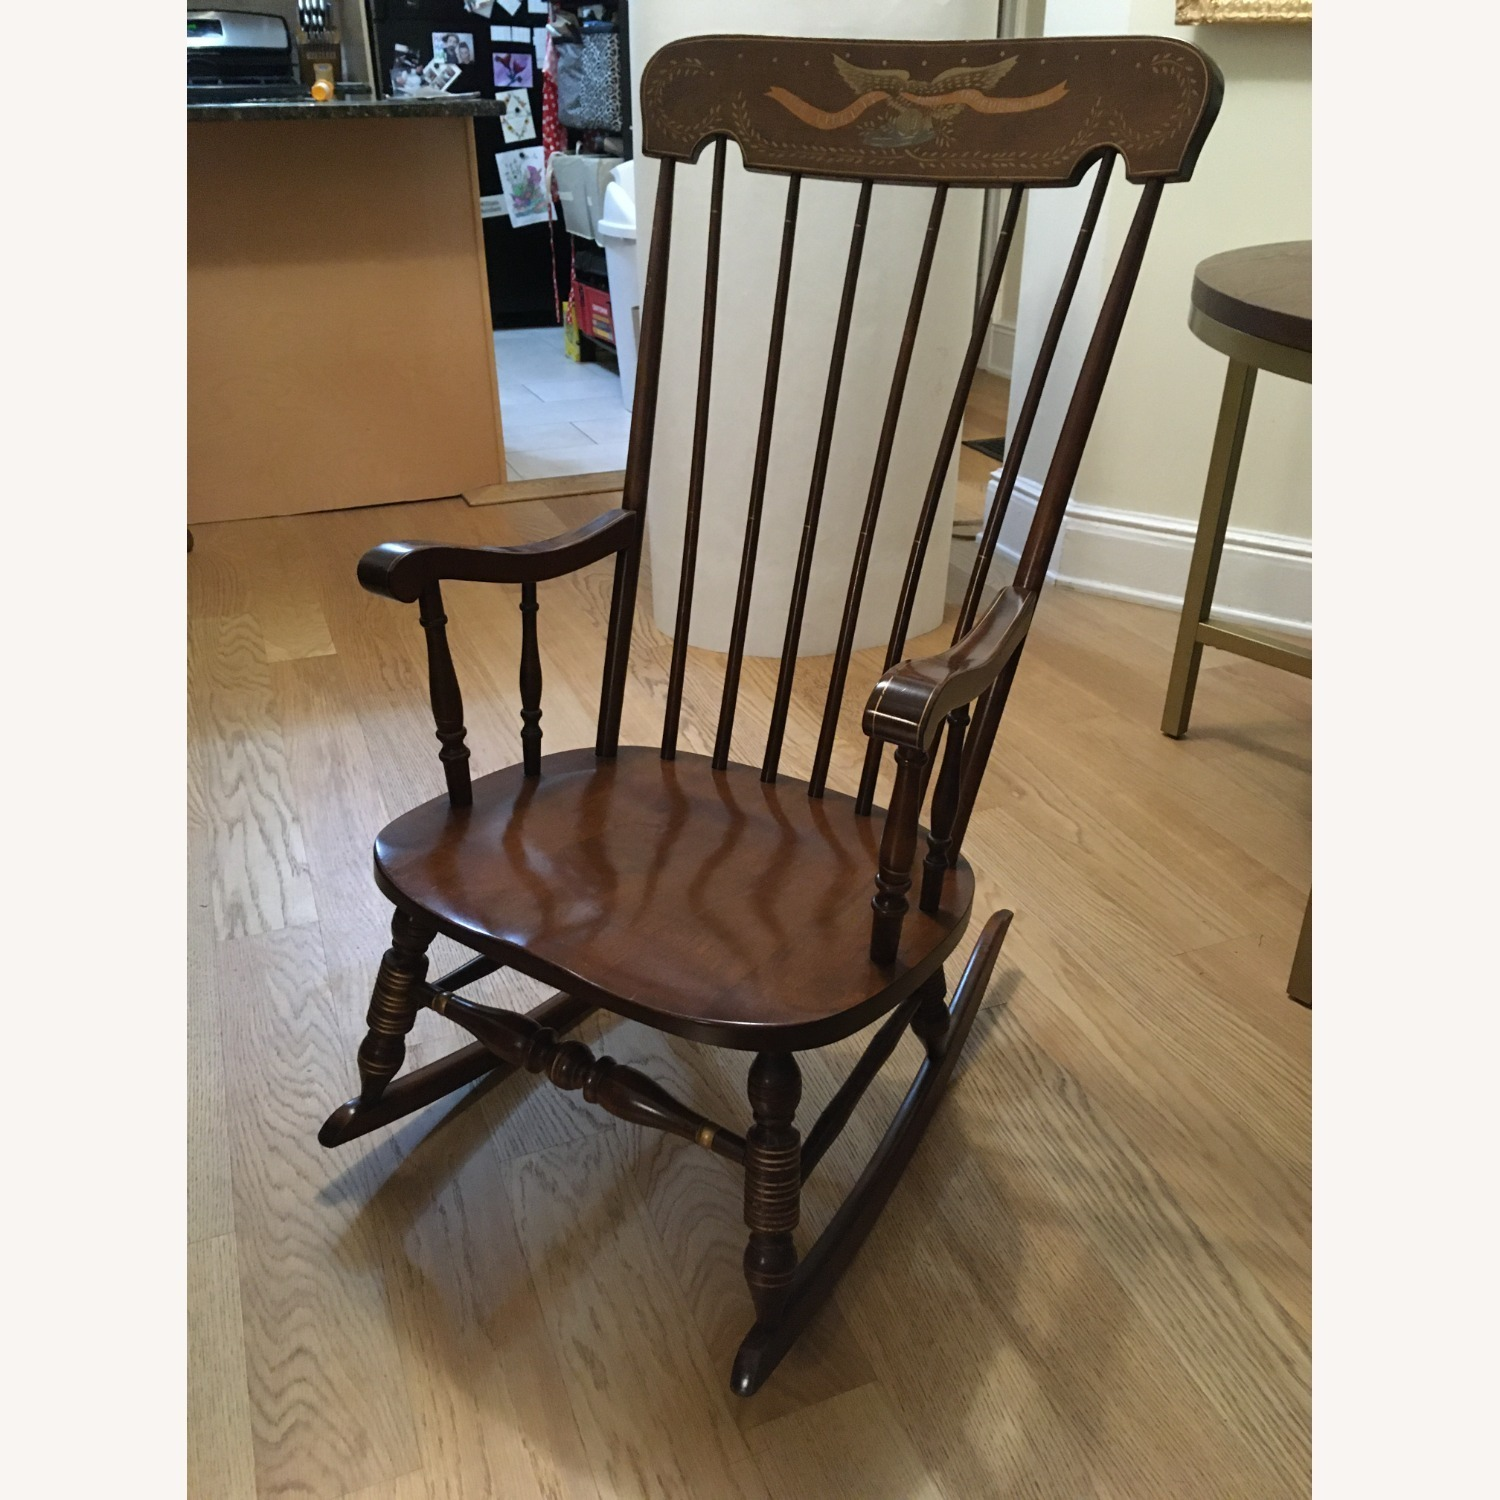 Vintage Rocking Chair with Americana Stenciling - image-1